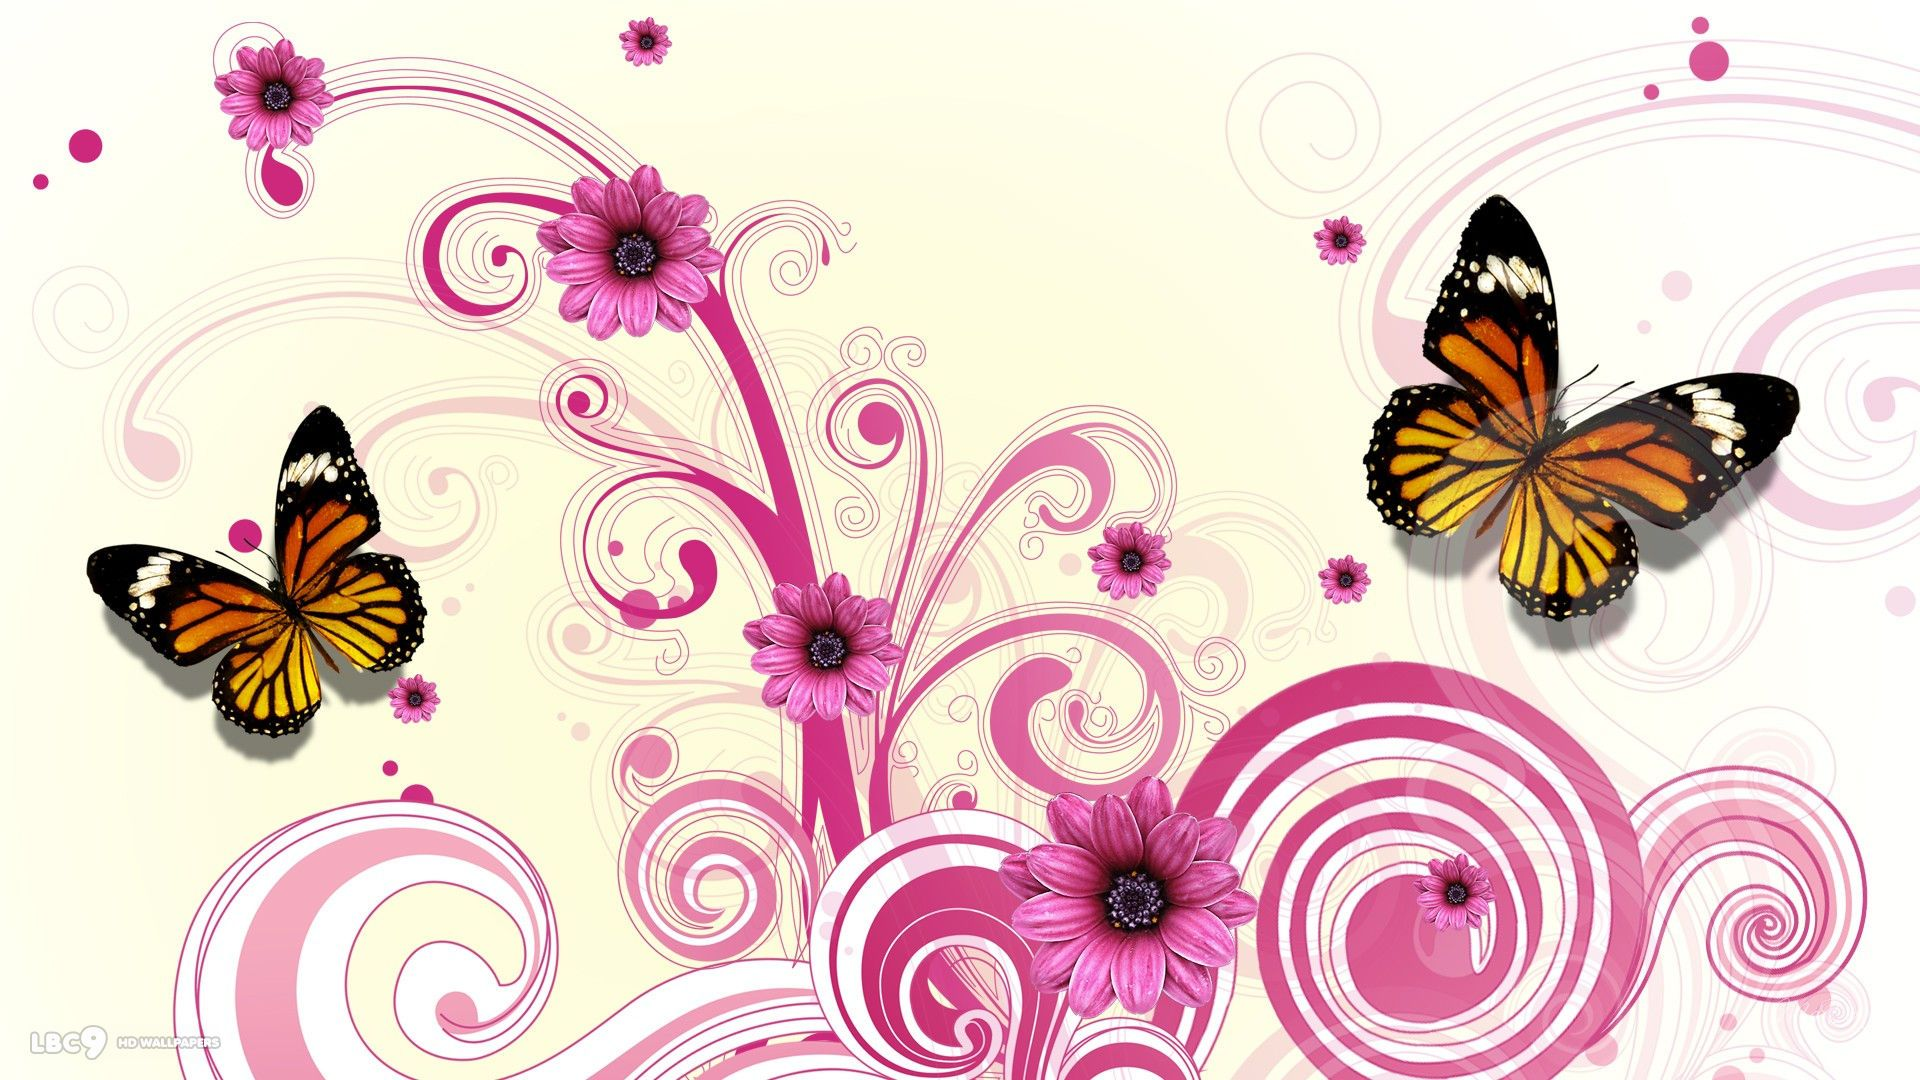 Pink Butterfly Wallpapers Group - Butterfly And Flower Background Pink , HD Wallpaper & Backgrounds